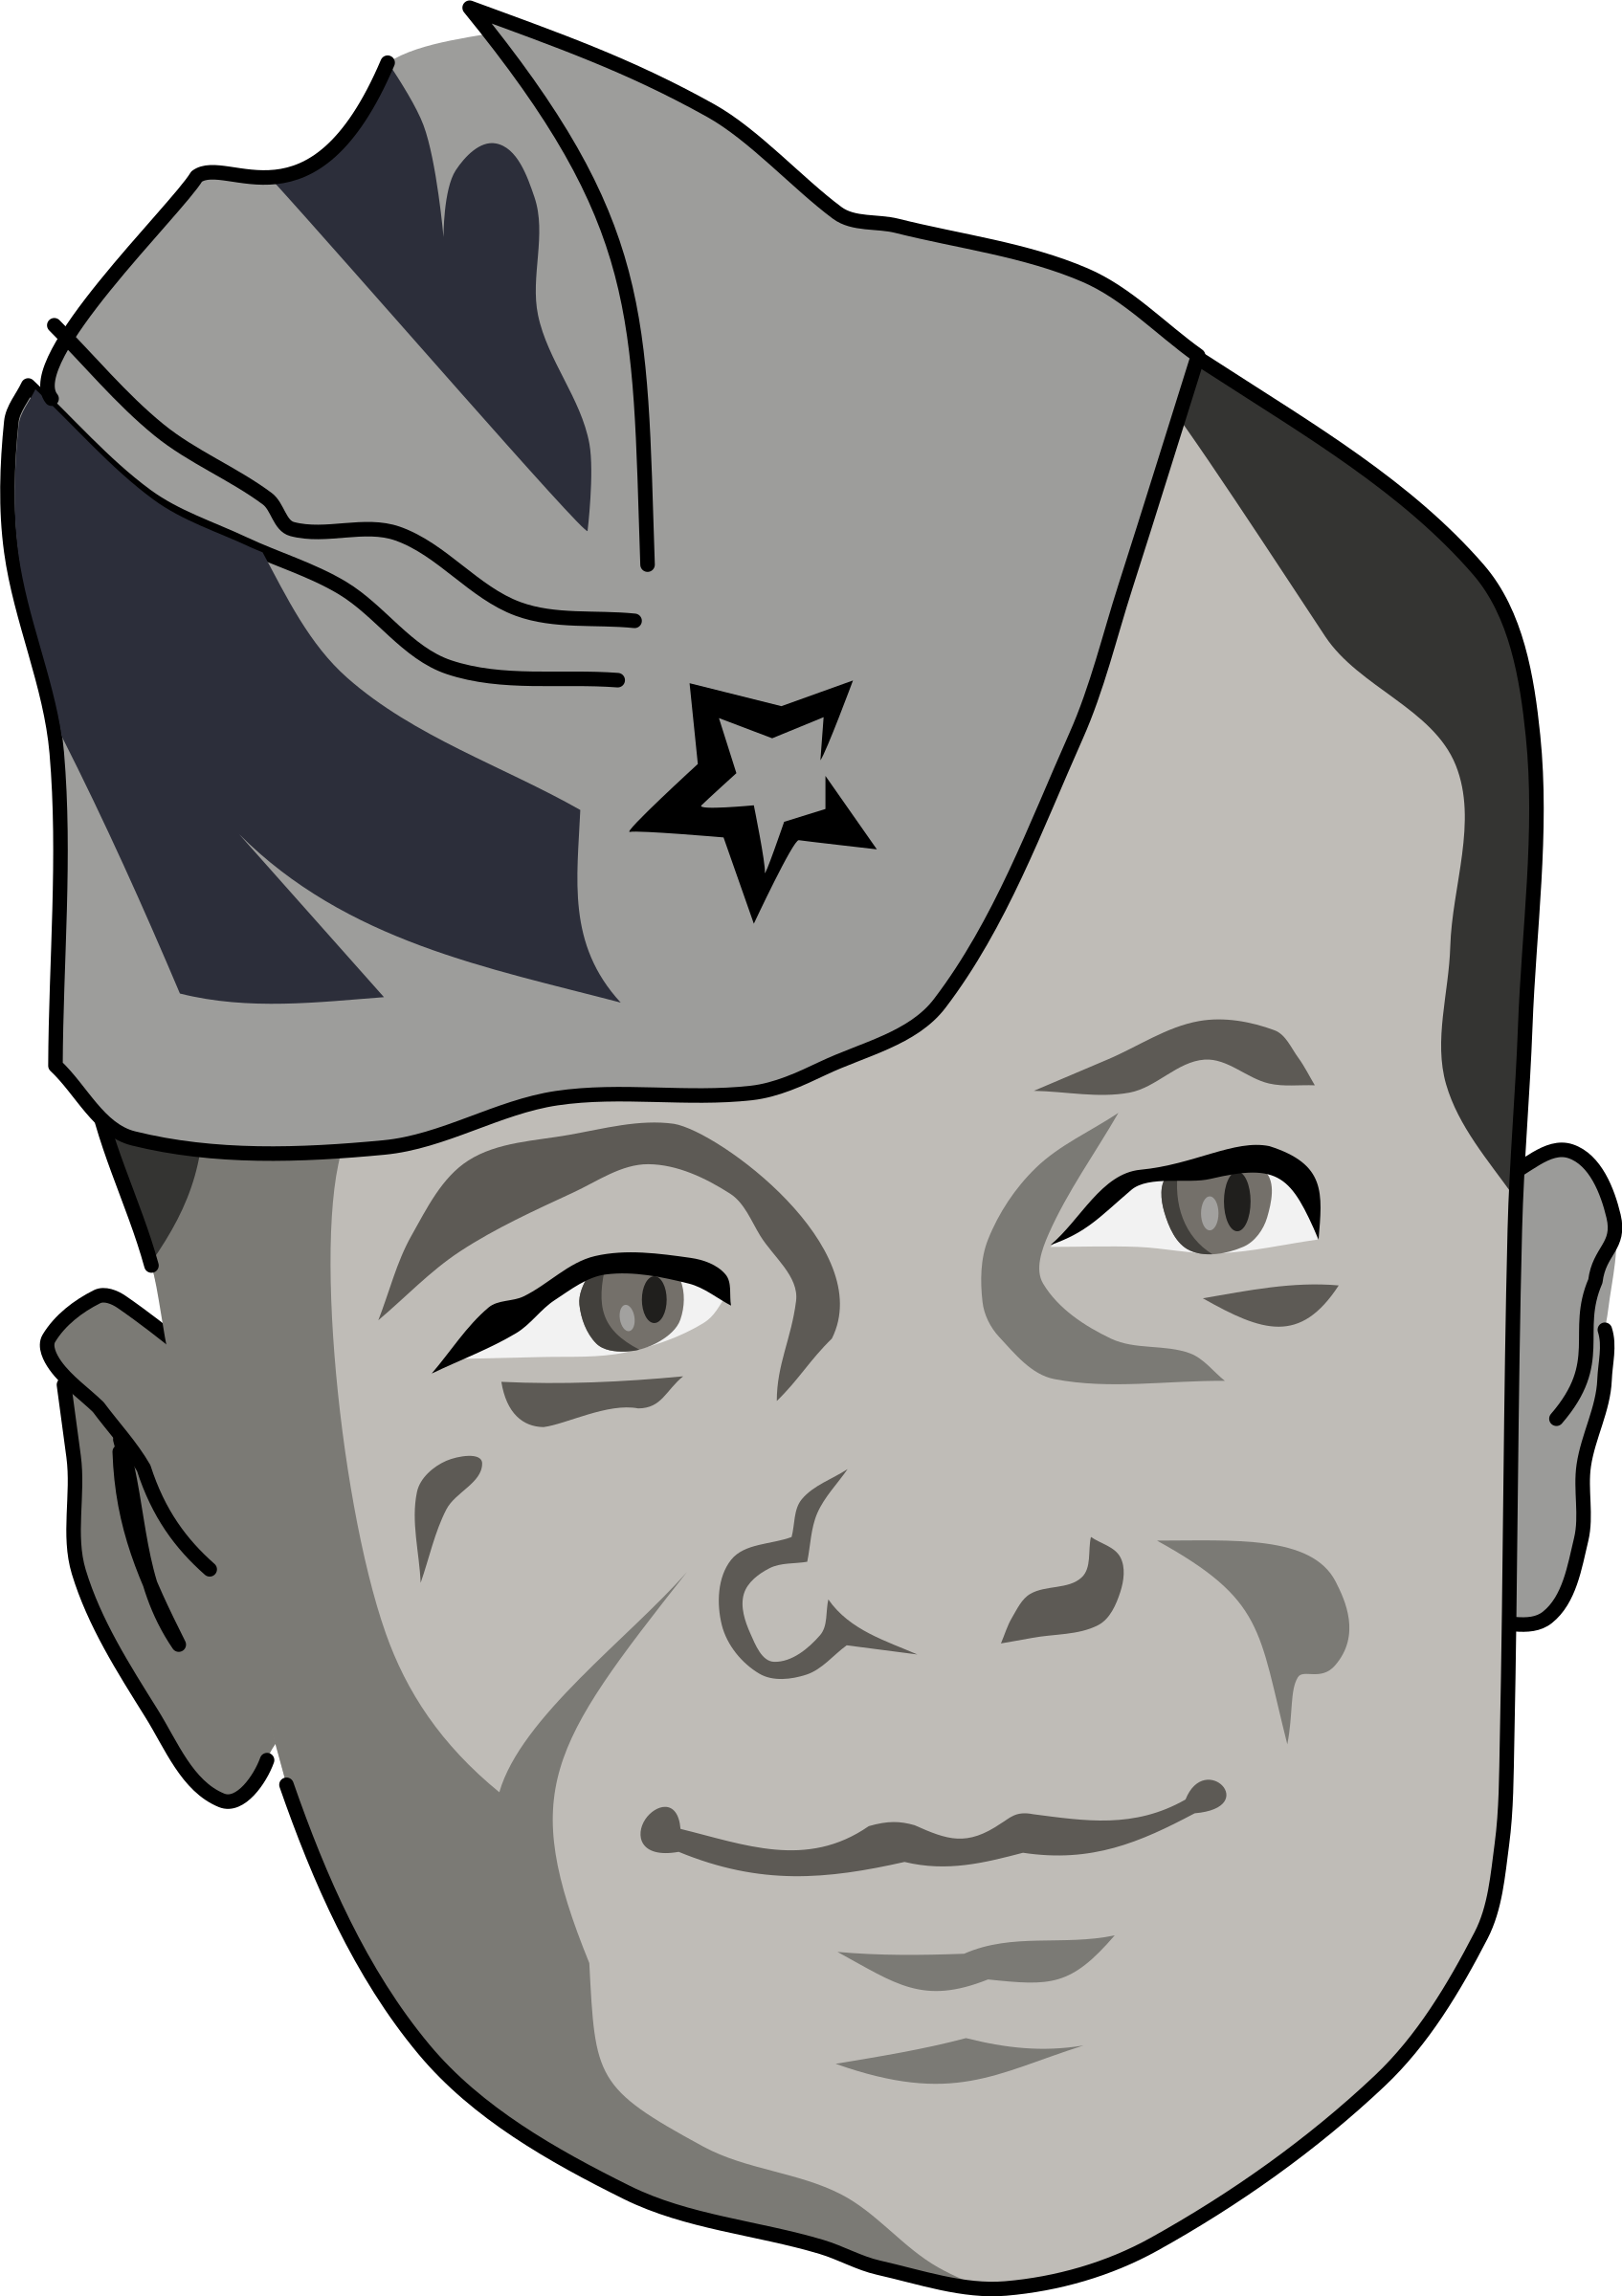 Soldier head png. Russian vasili tyorkin icons